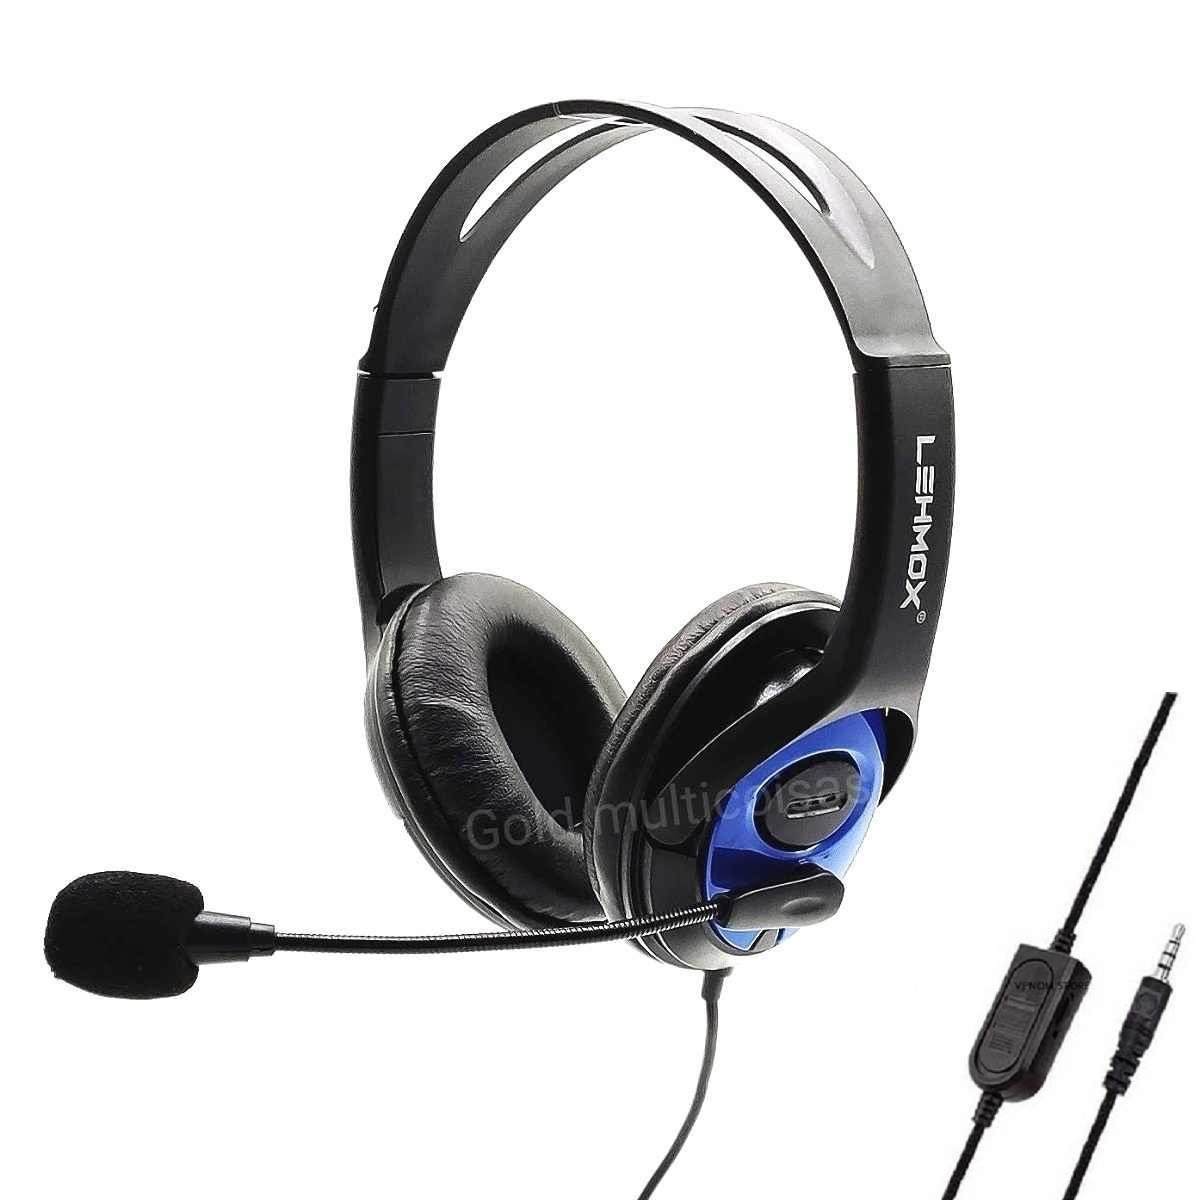 Headset Fone Gamer C/ Microfone Compatível Ps4 - Xbox One Lehmox Ley-35